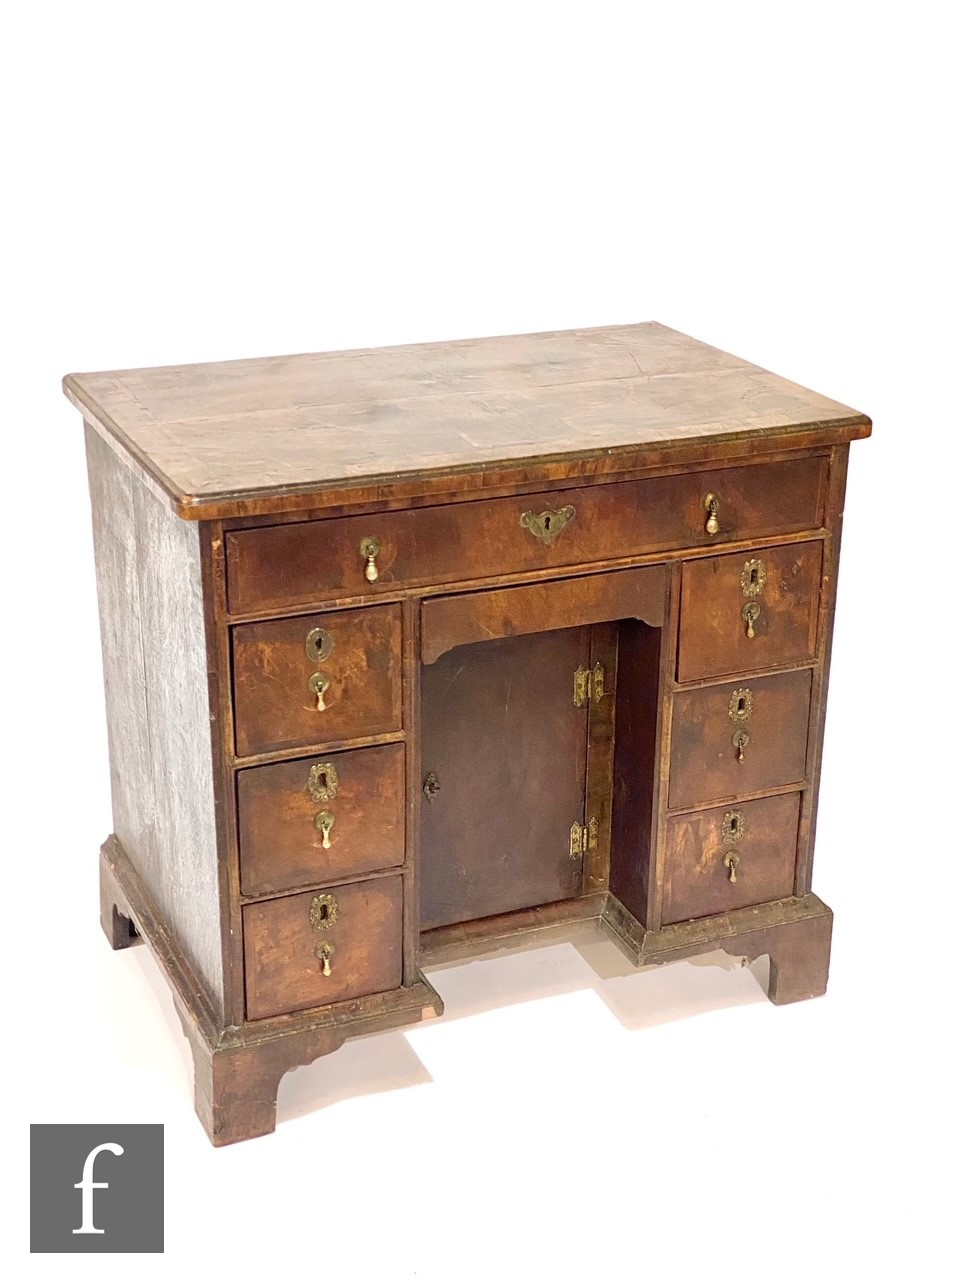 An 18th Century crossbanded and inlaid kneehole writing desk, the quartered and detailed inlaid